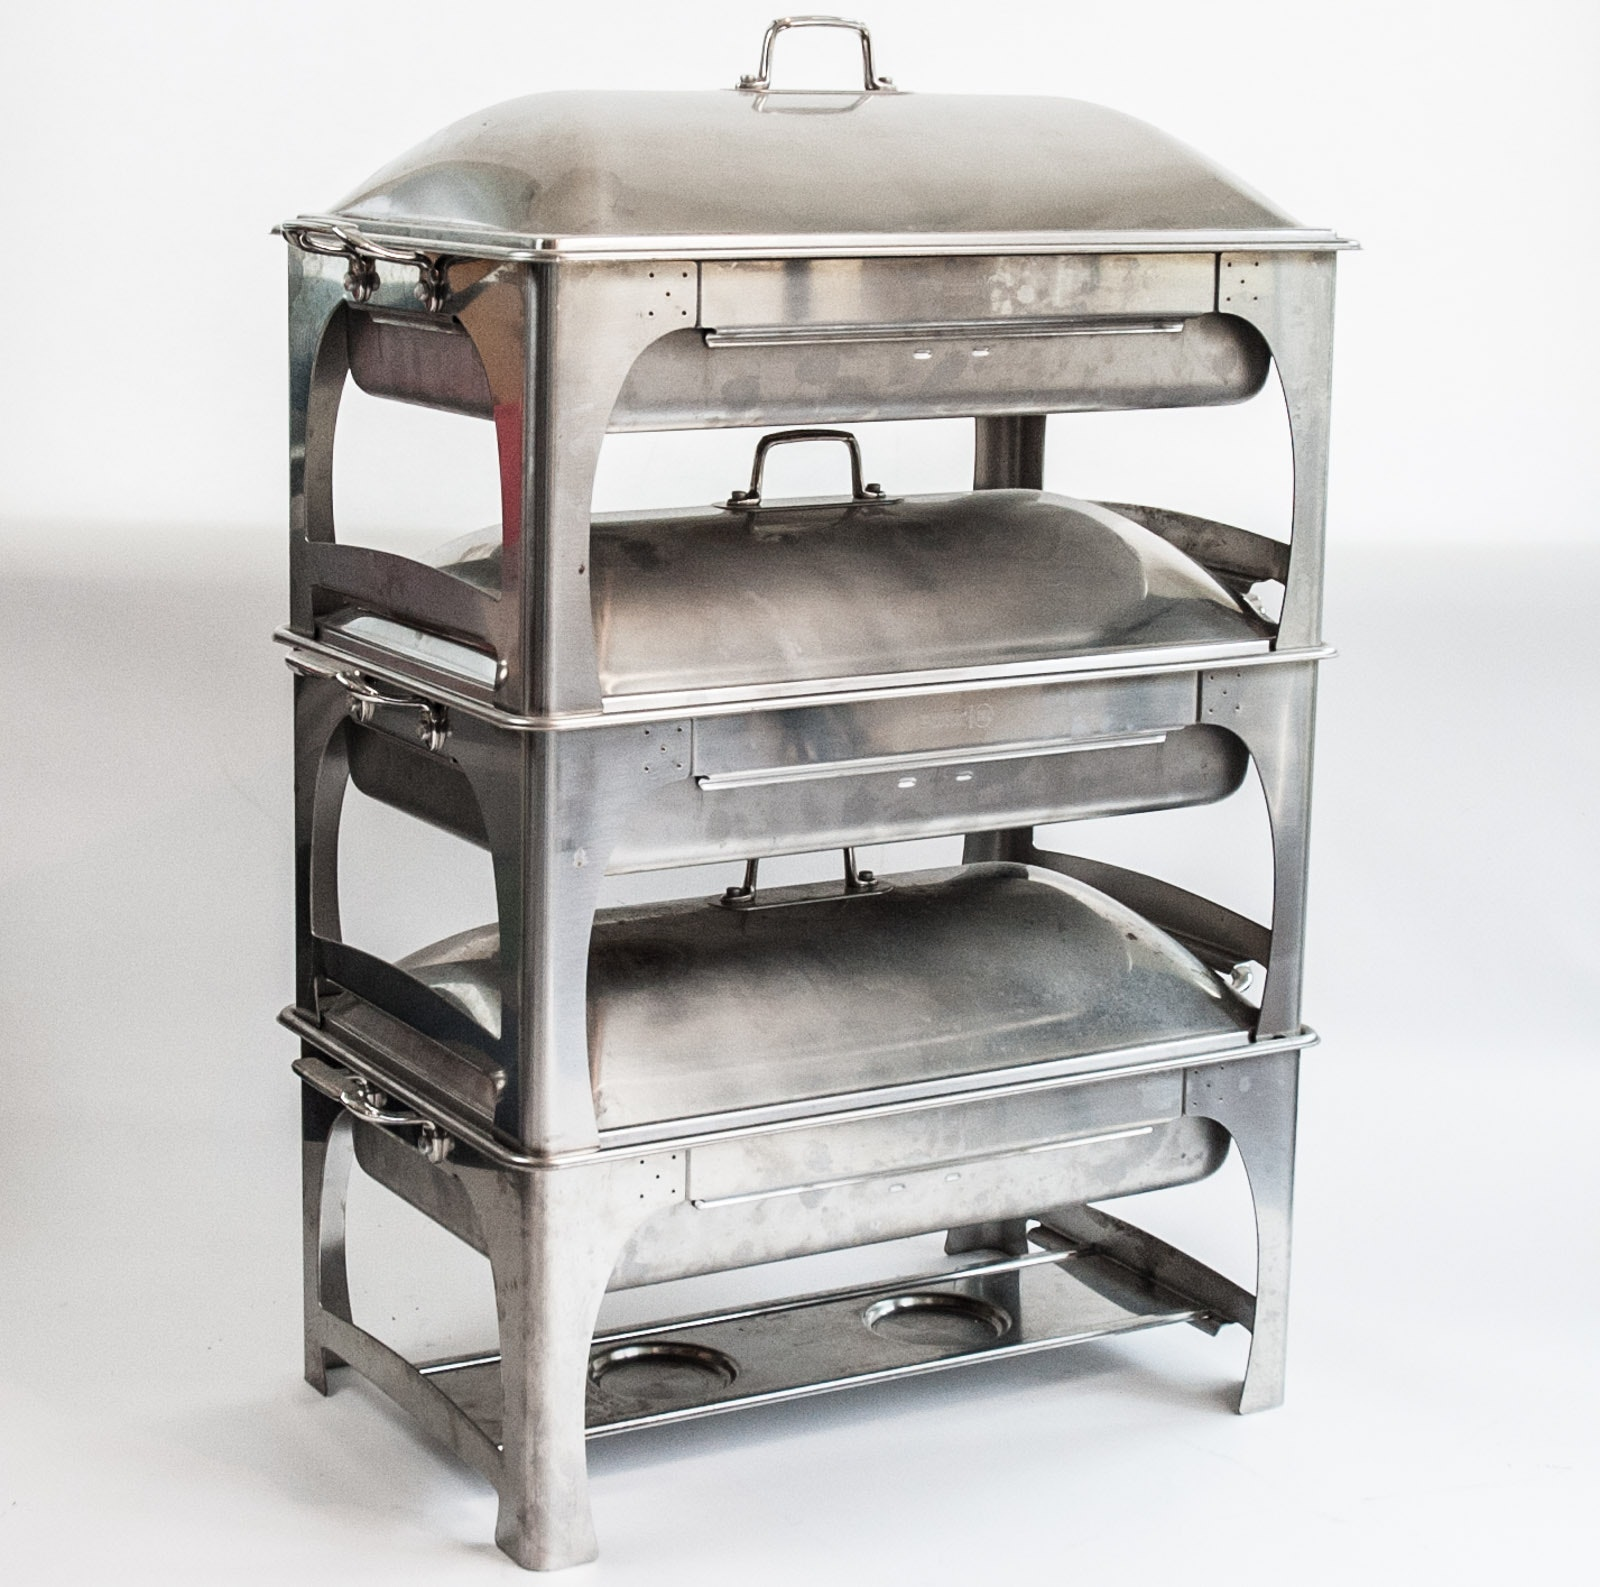 Tiered Chafing Dish